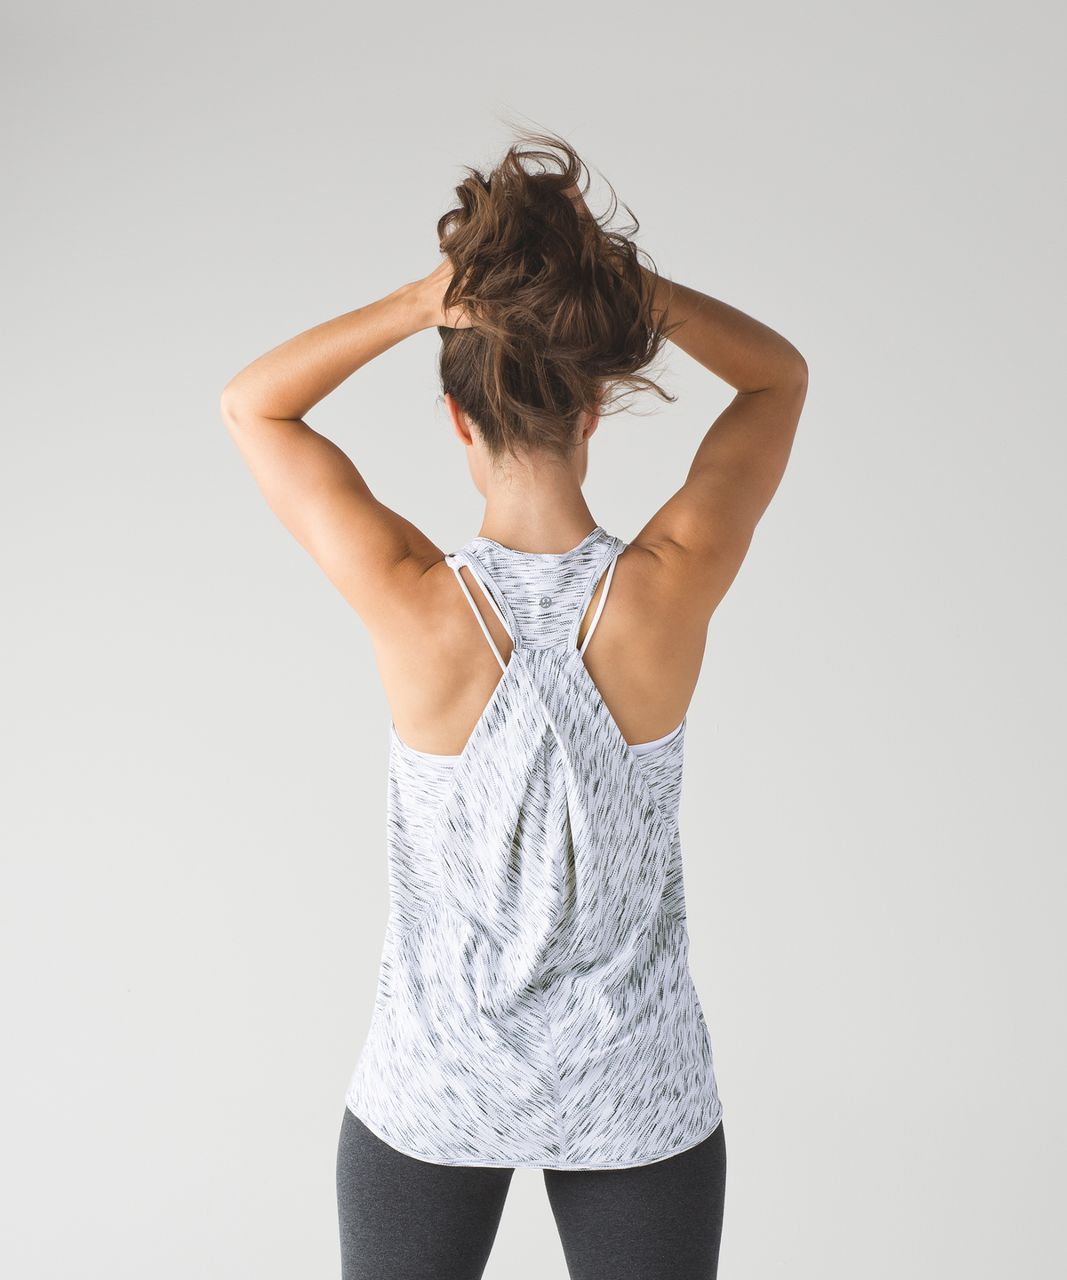 a11afb97b8 Lululemon Essential Tank - Tiger Space Dye Black White (First ...